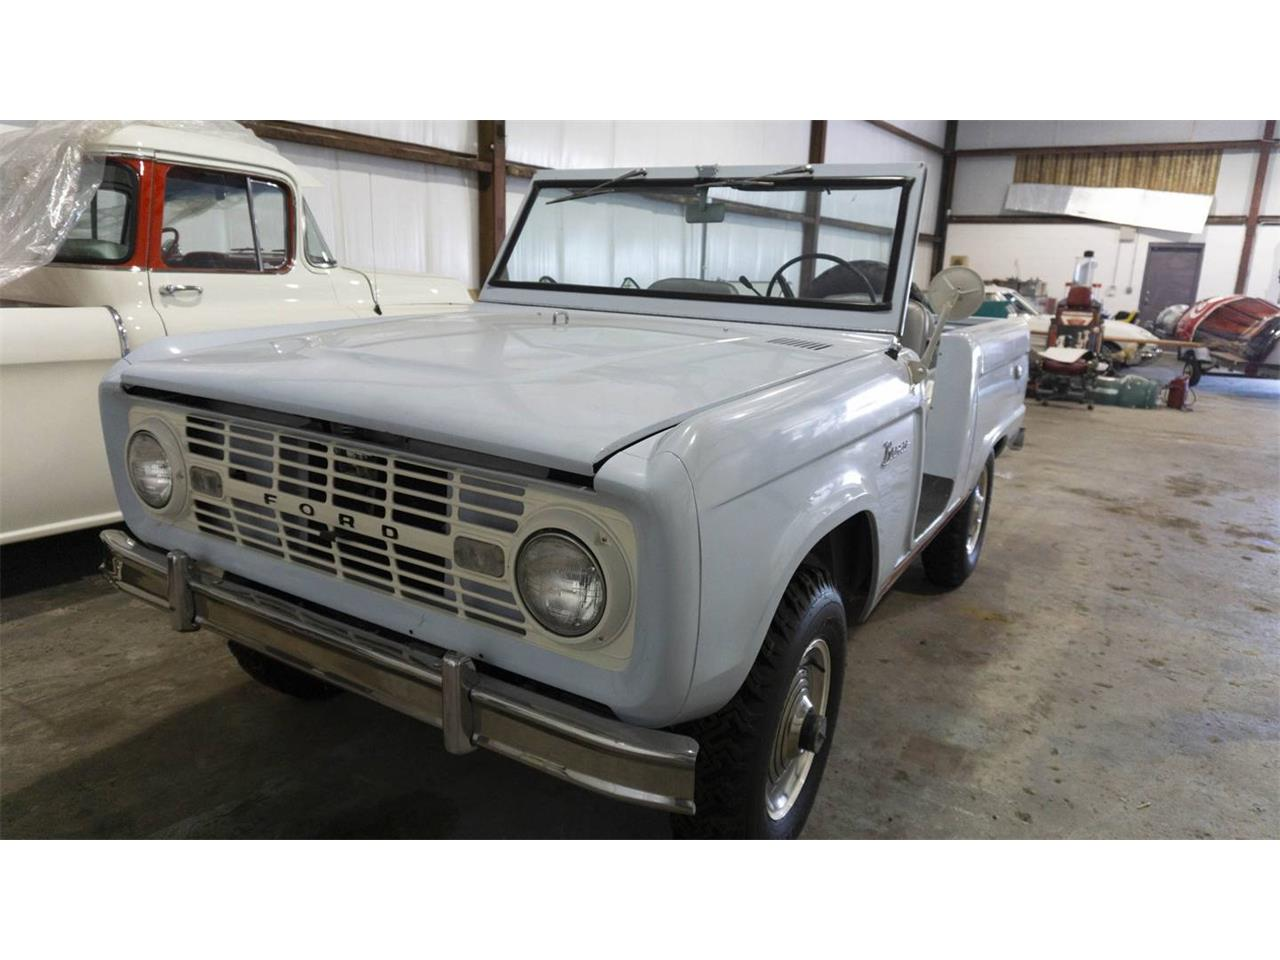 Large Picture of Classic 1966 BRONCO UTE located in New Orleans Louisiana Auction Vehicle - NS71